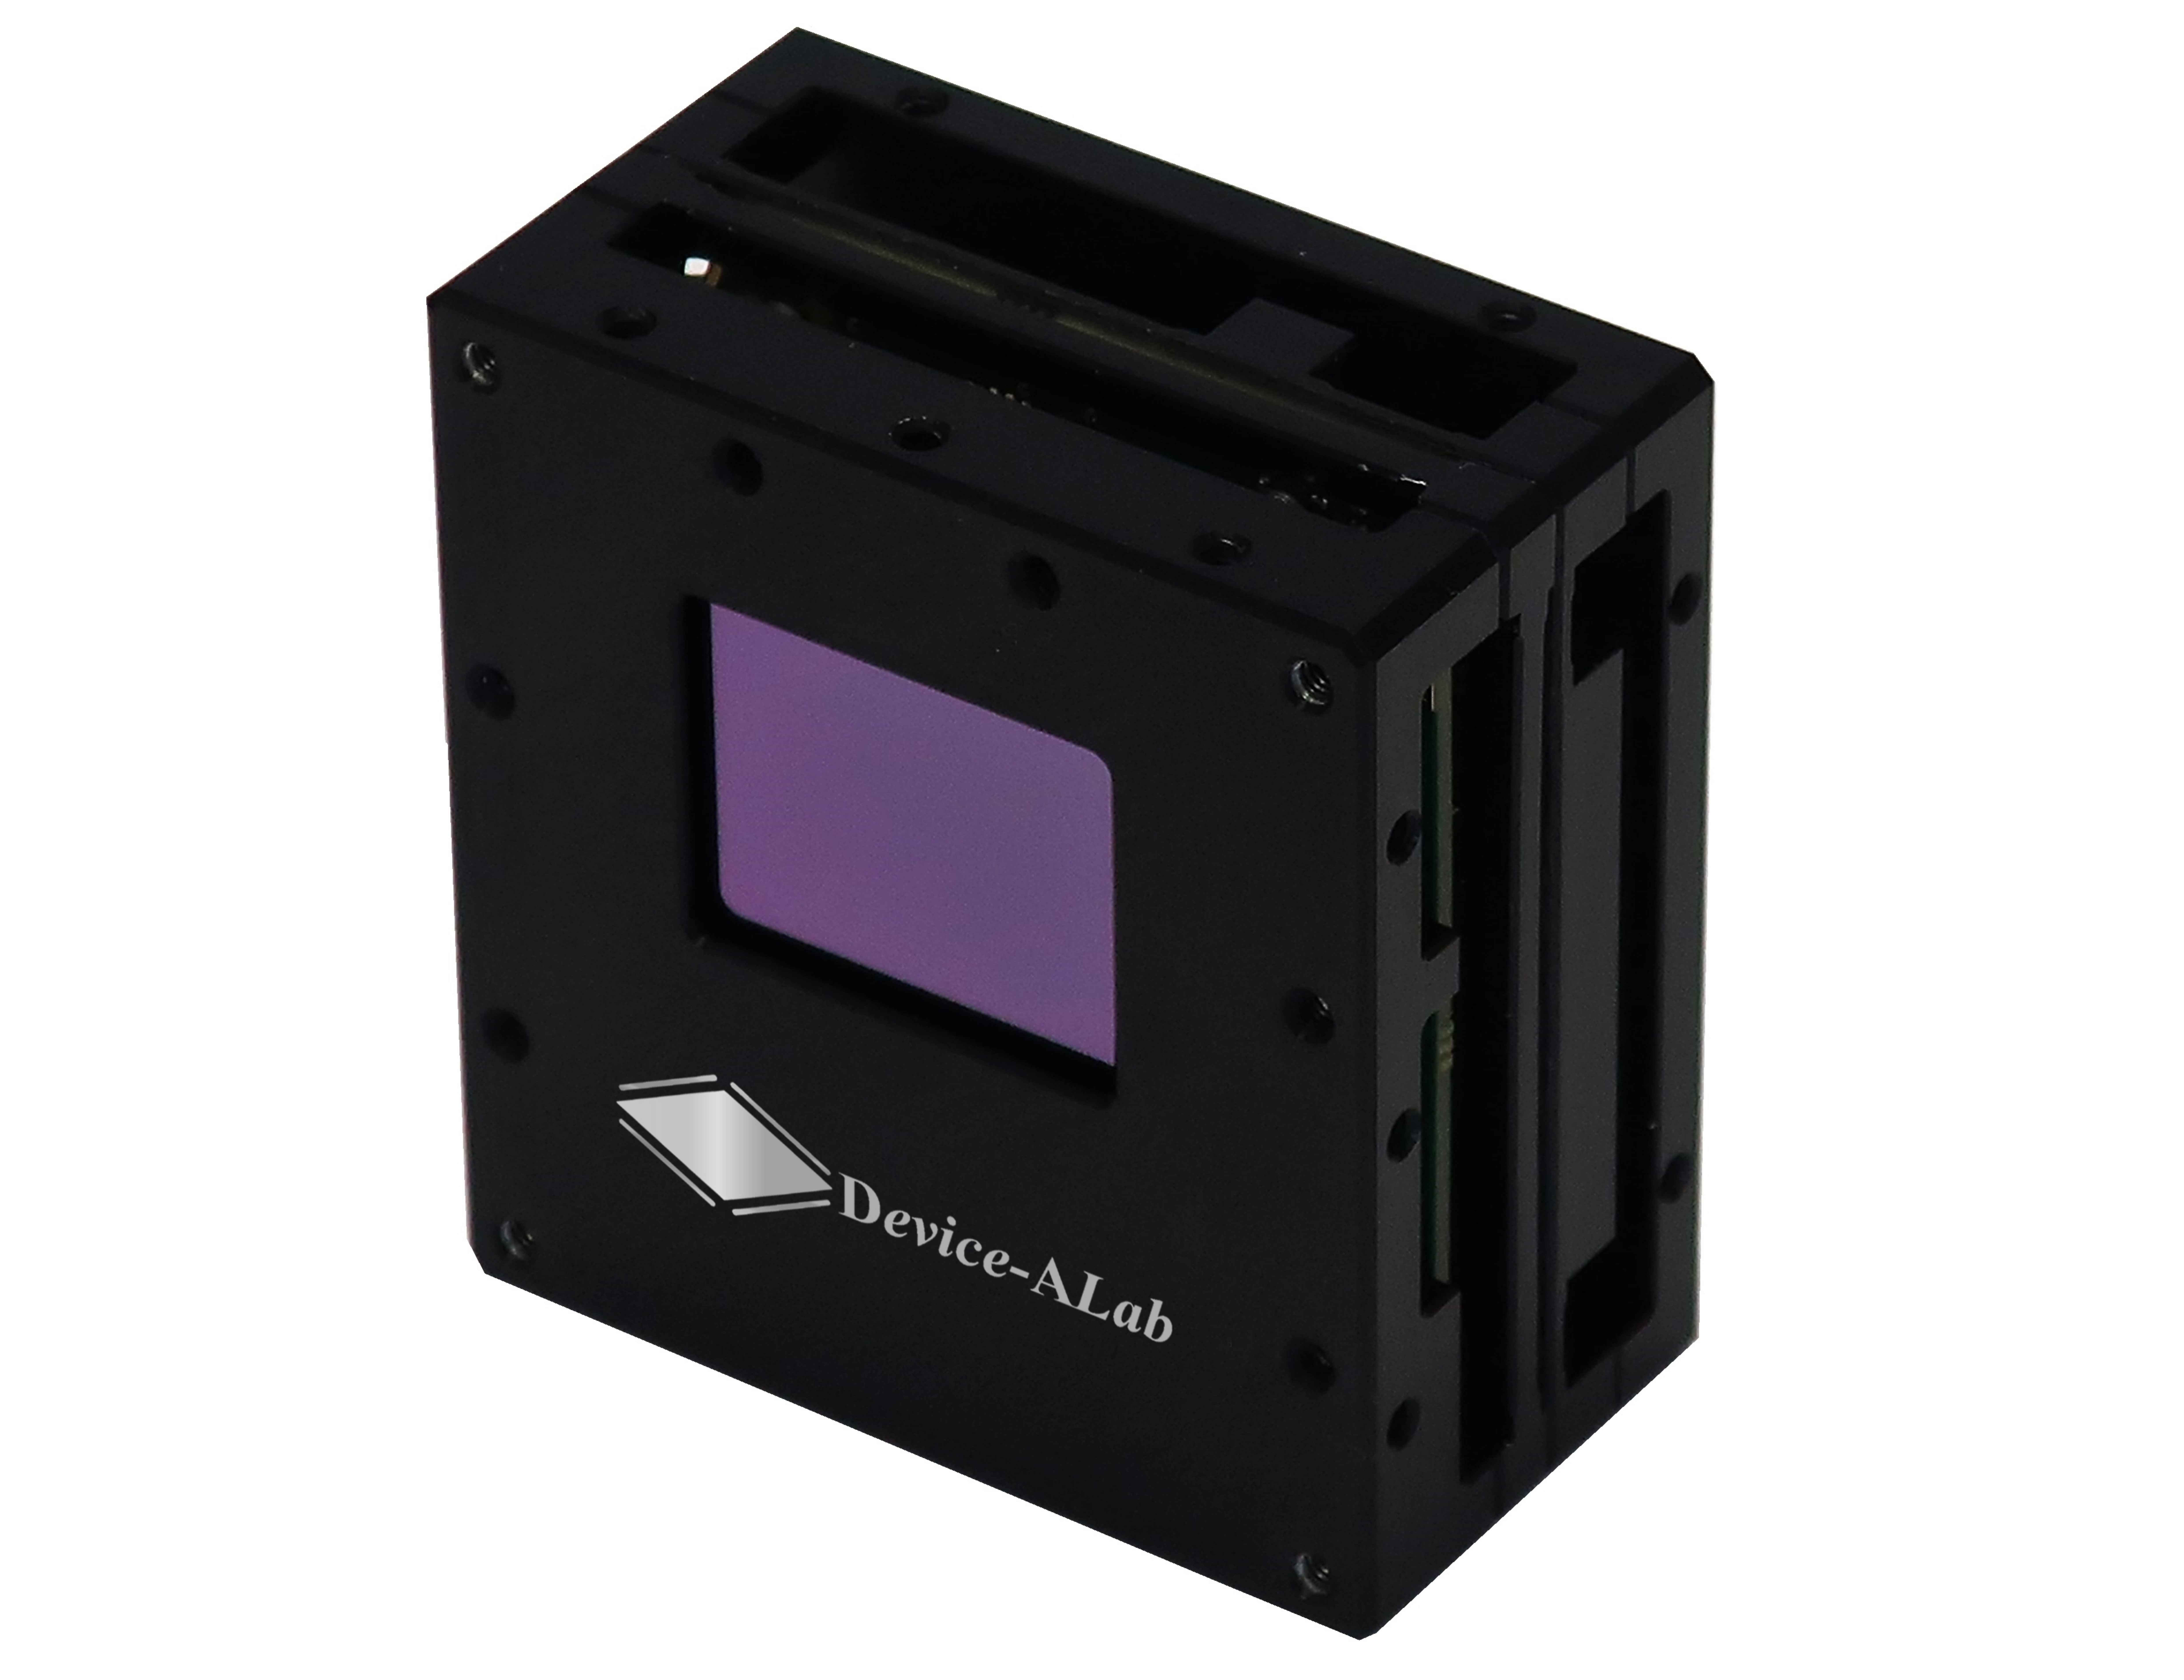 WORLD FIRST SWAP MEGAPIXEL THERMAL CAMERA CORE BY DEVICE-ALAB